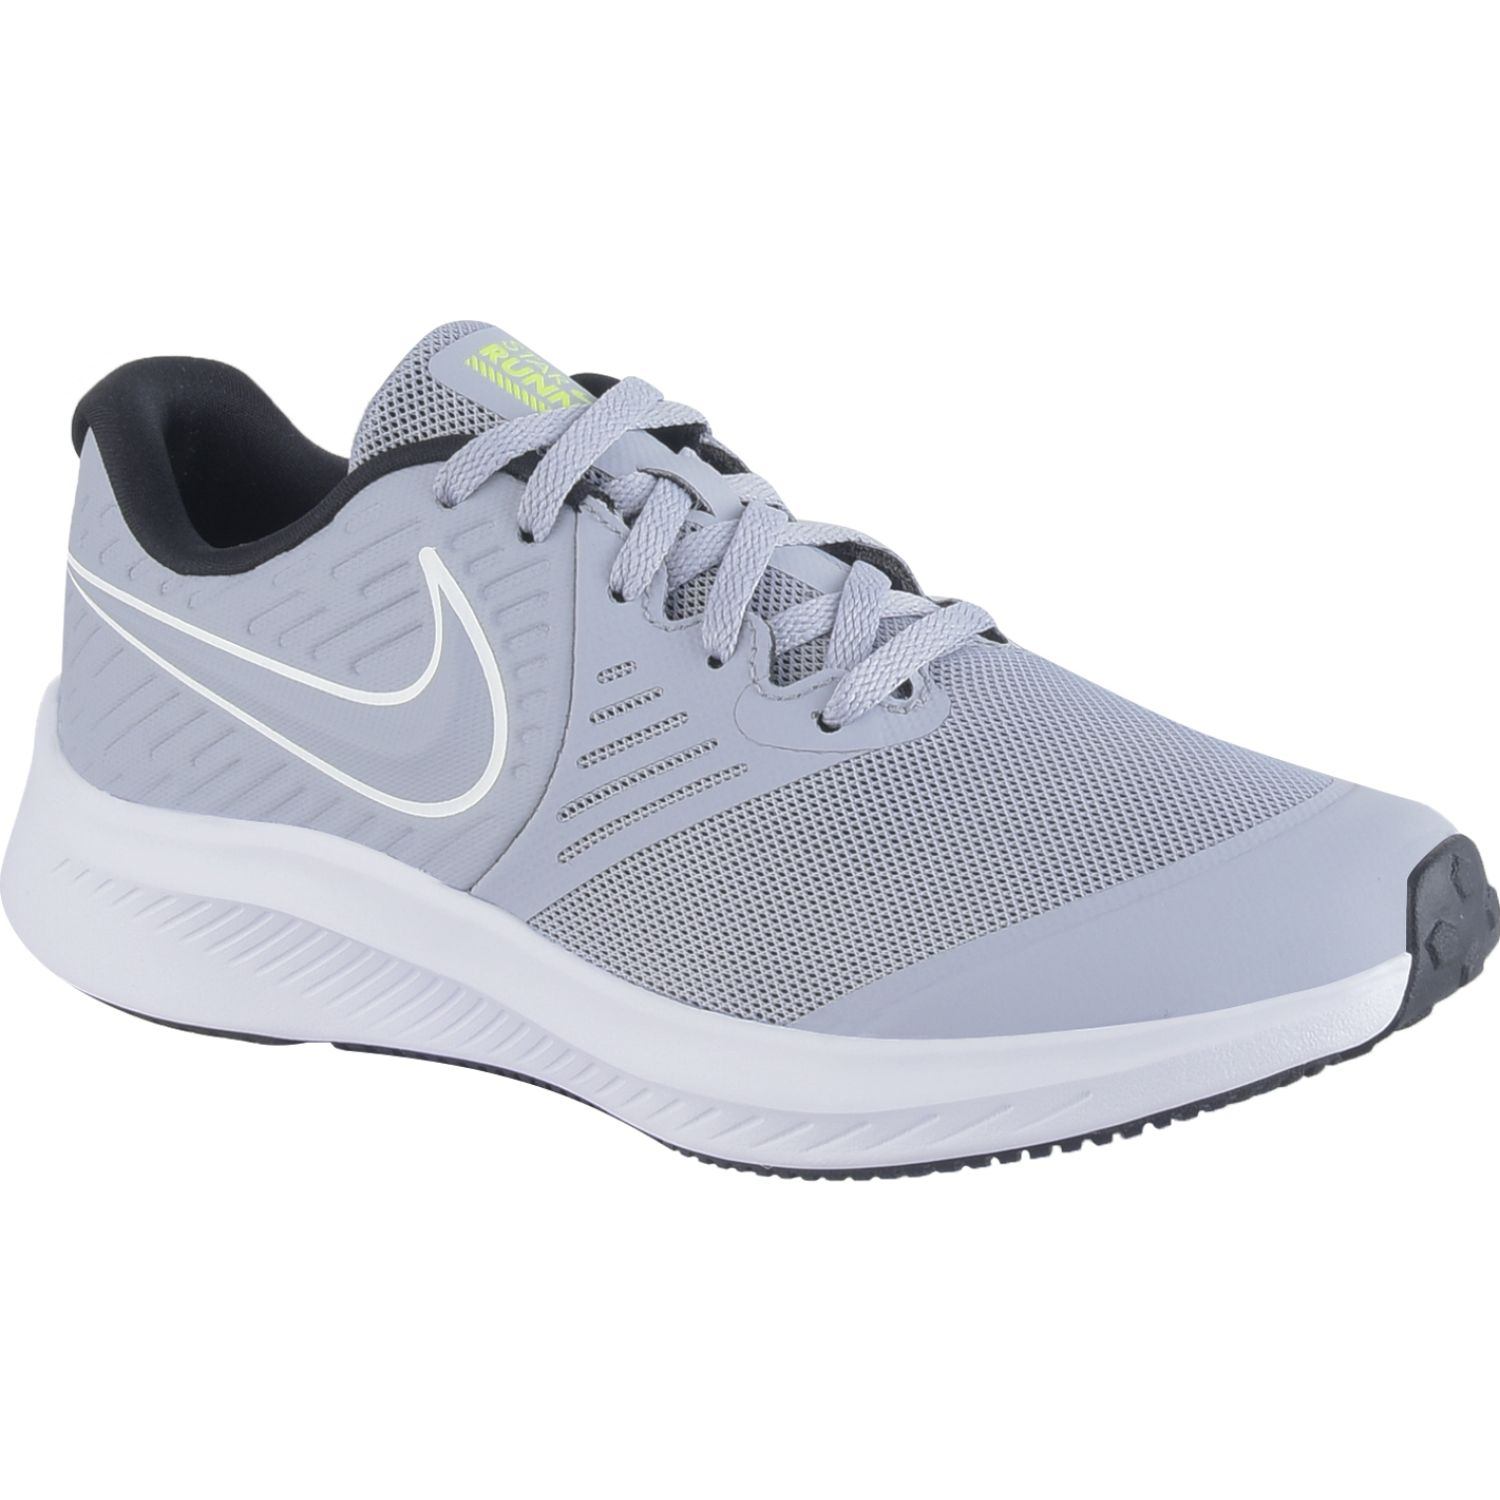 Nike NIKE STAR RUNNER 2 GS Gris / blanco Walking